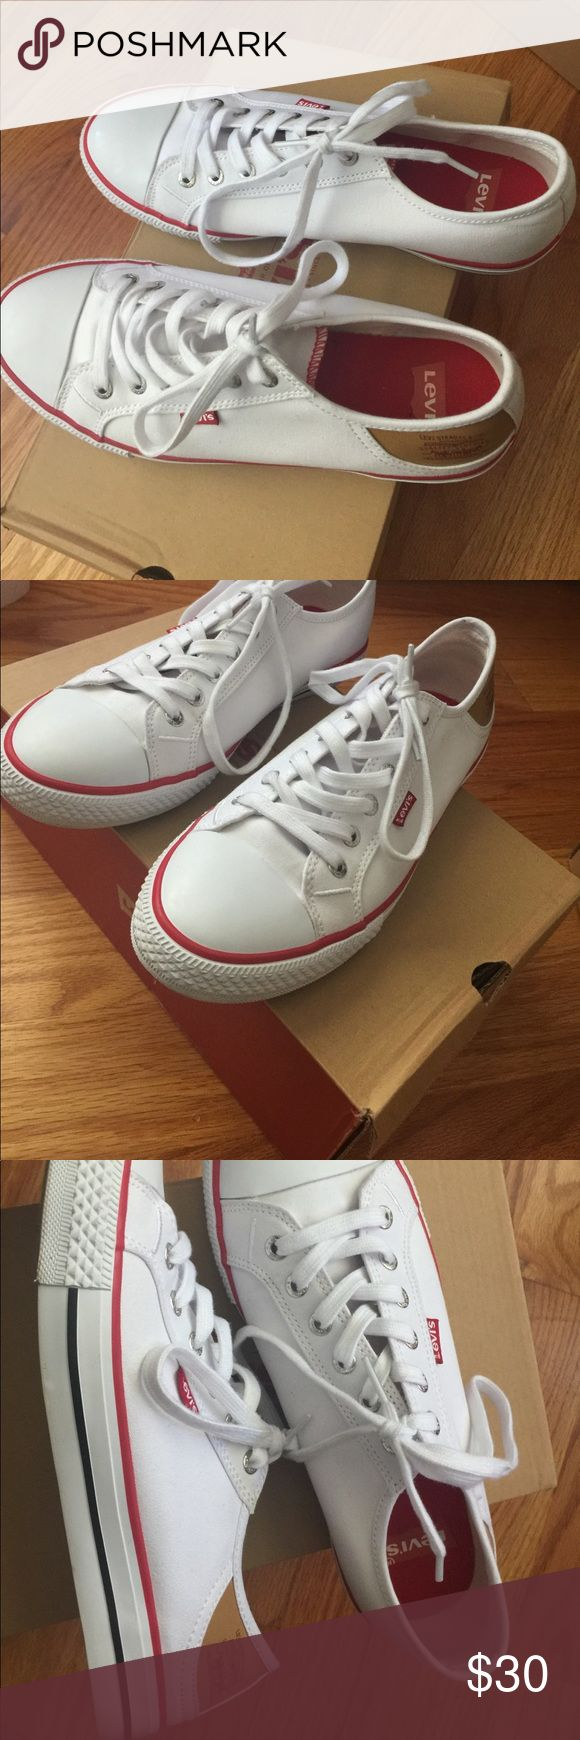 Levi sneakers White Levi brand converse style sneakers Levi's Shoes Sneakers